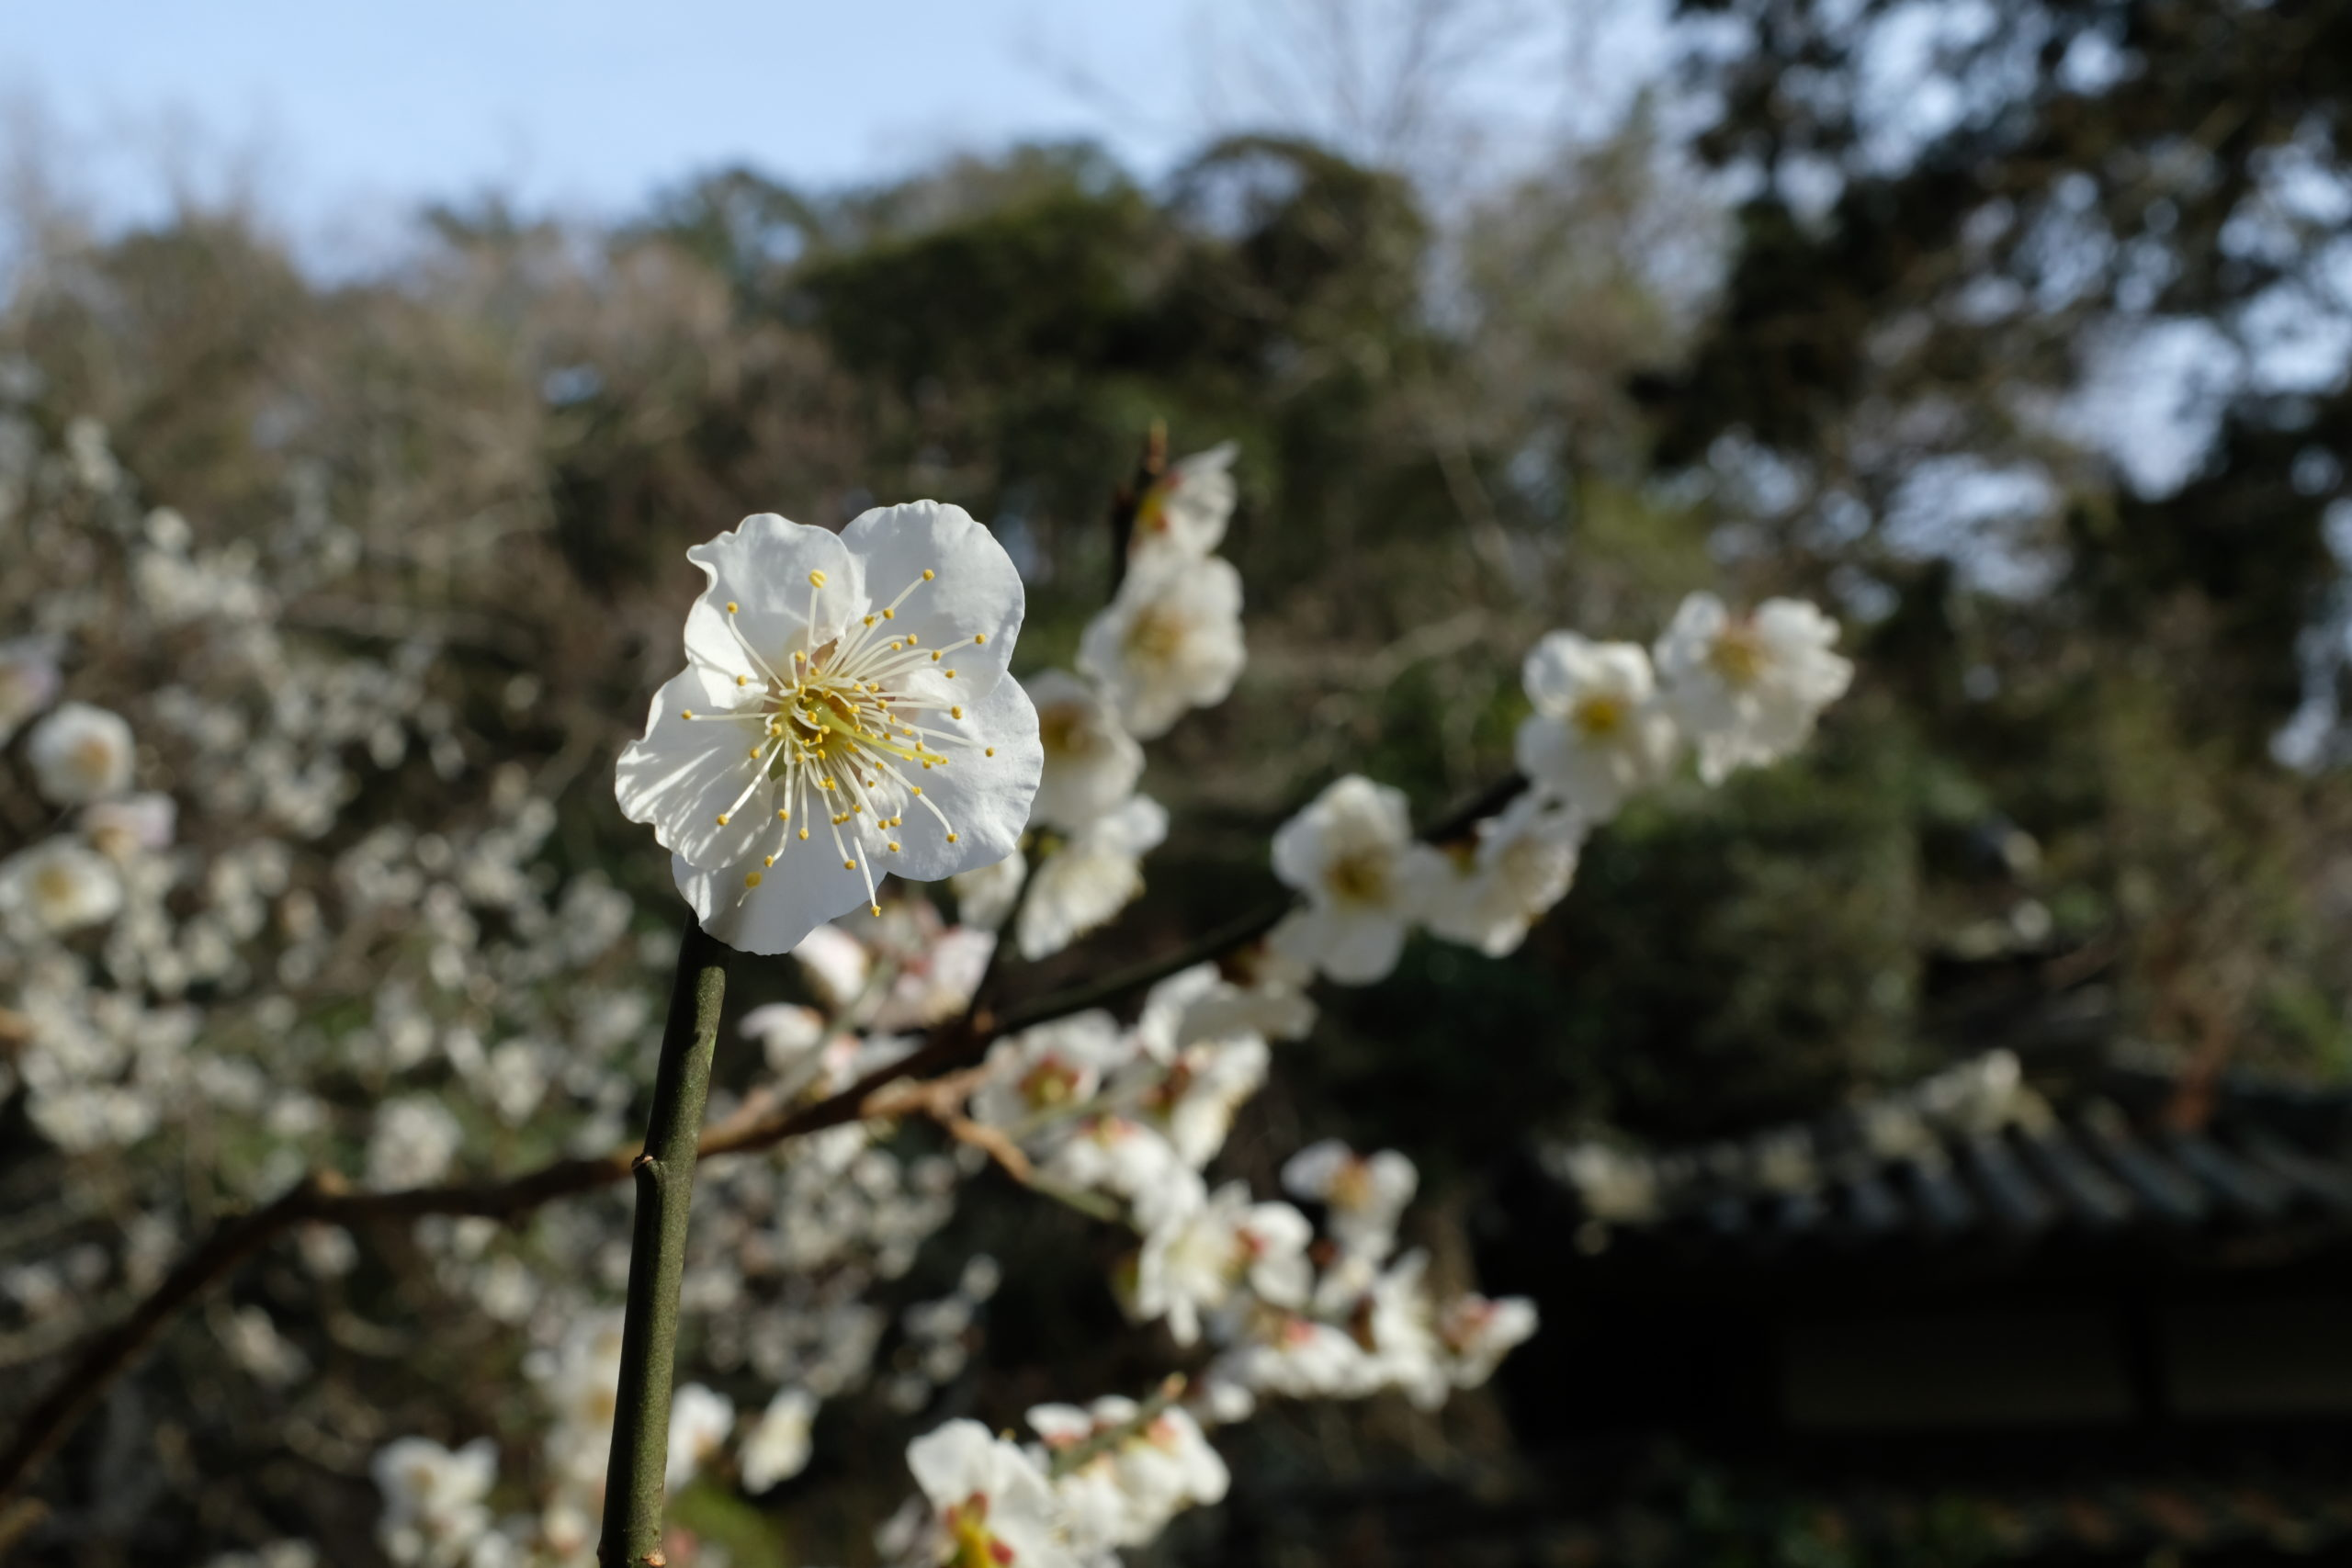 Integrating Japanese Traditions and Global Climate efforts